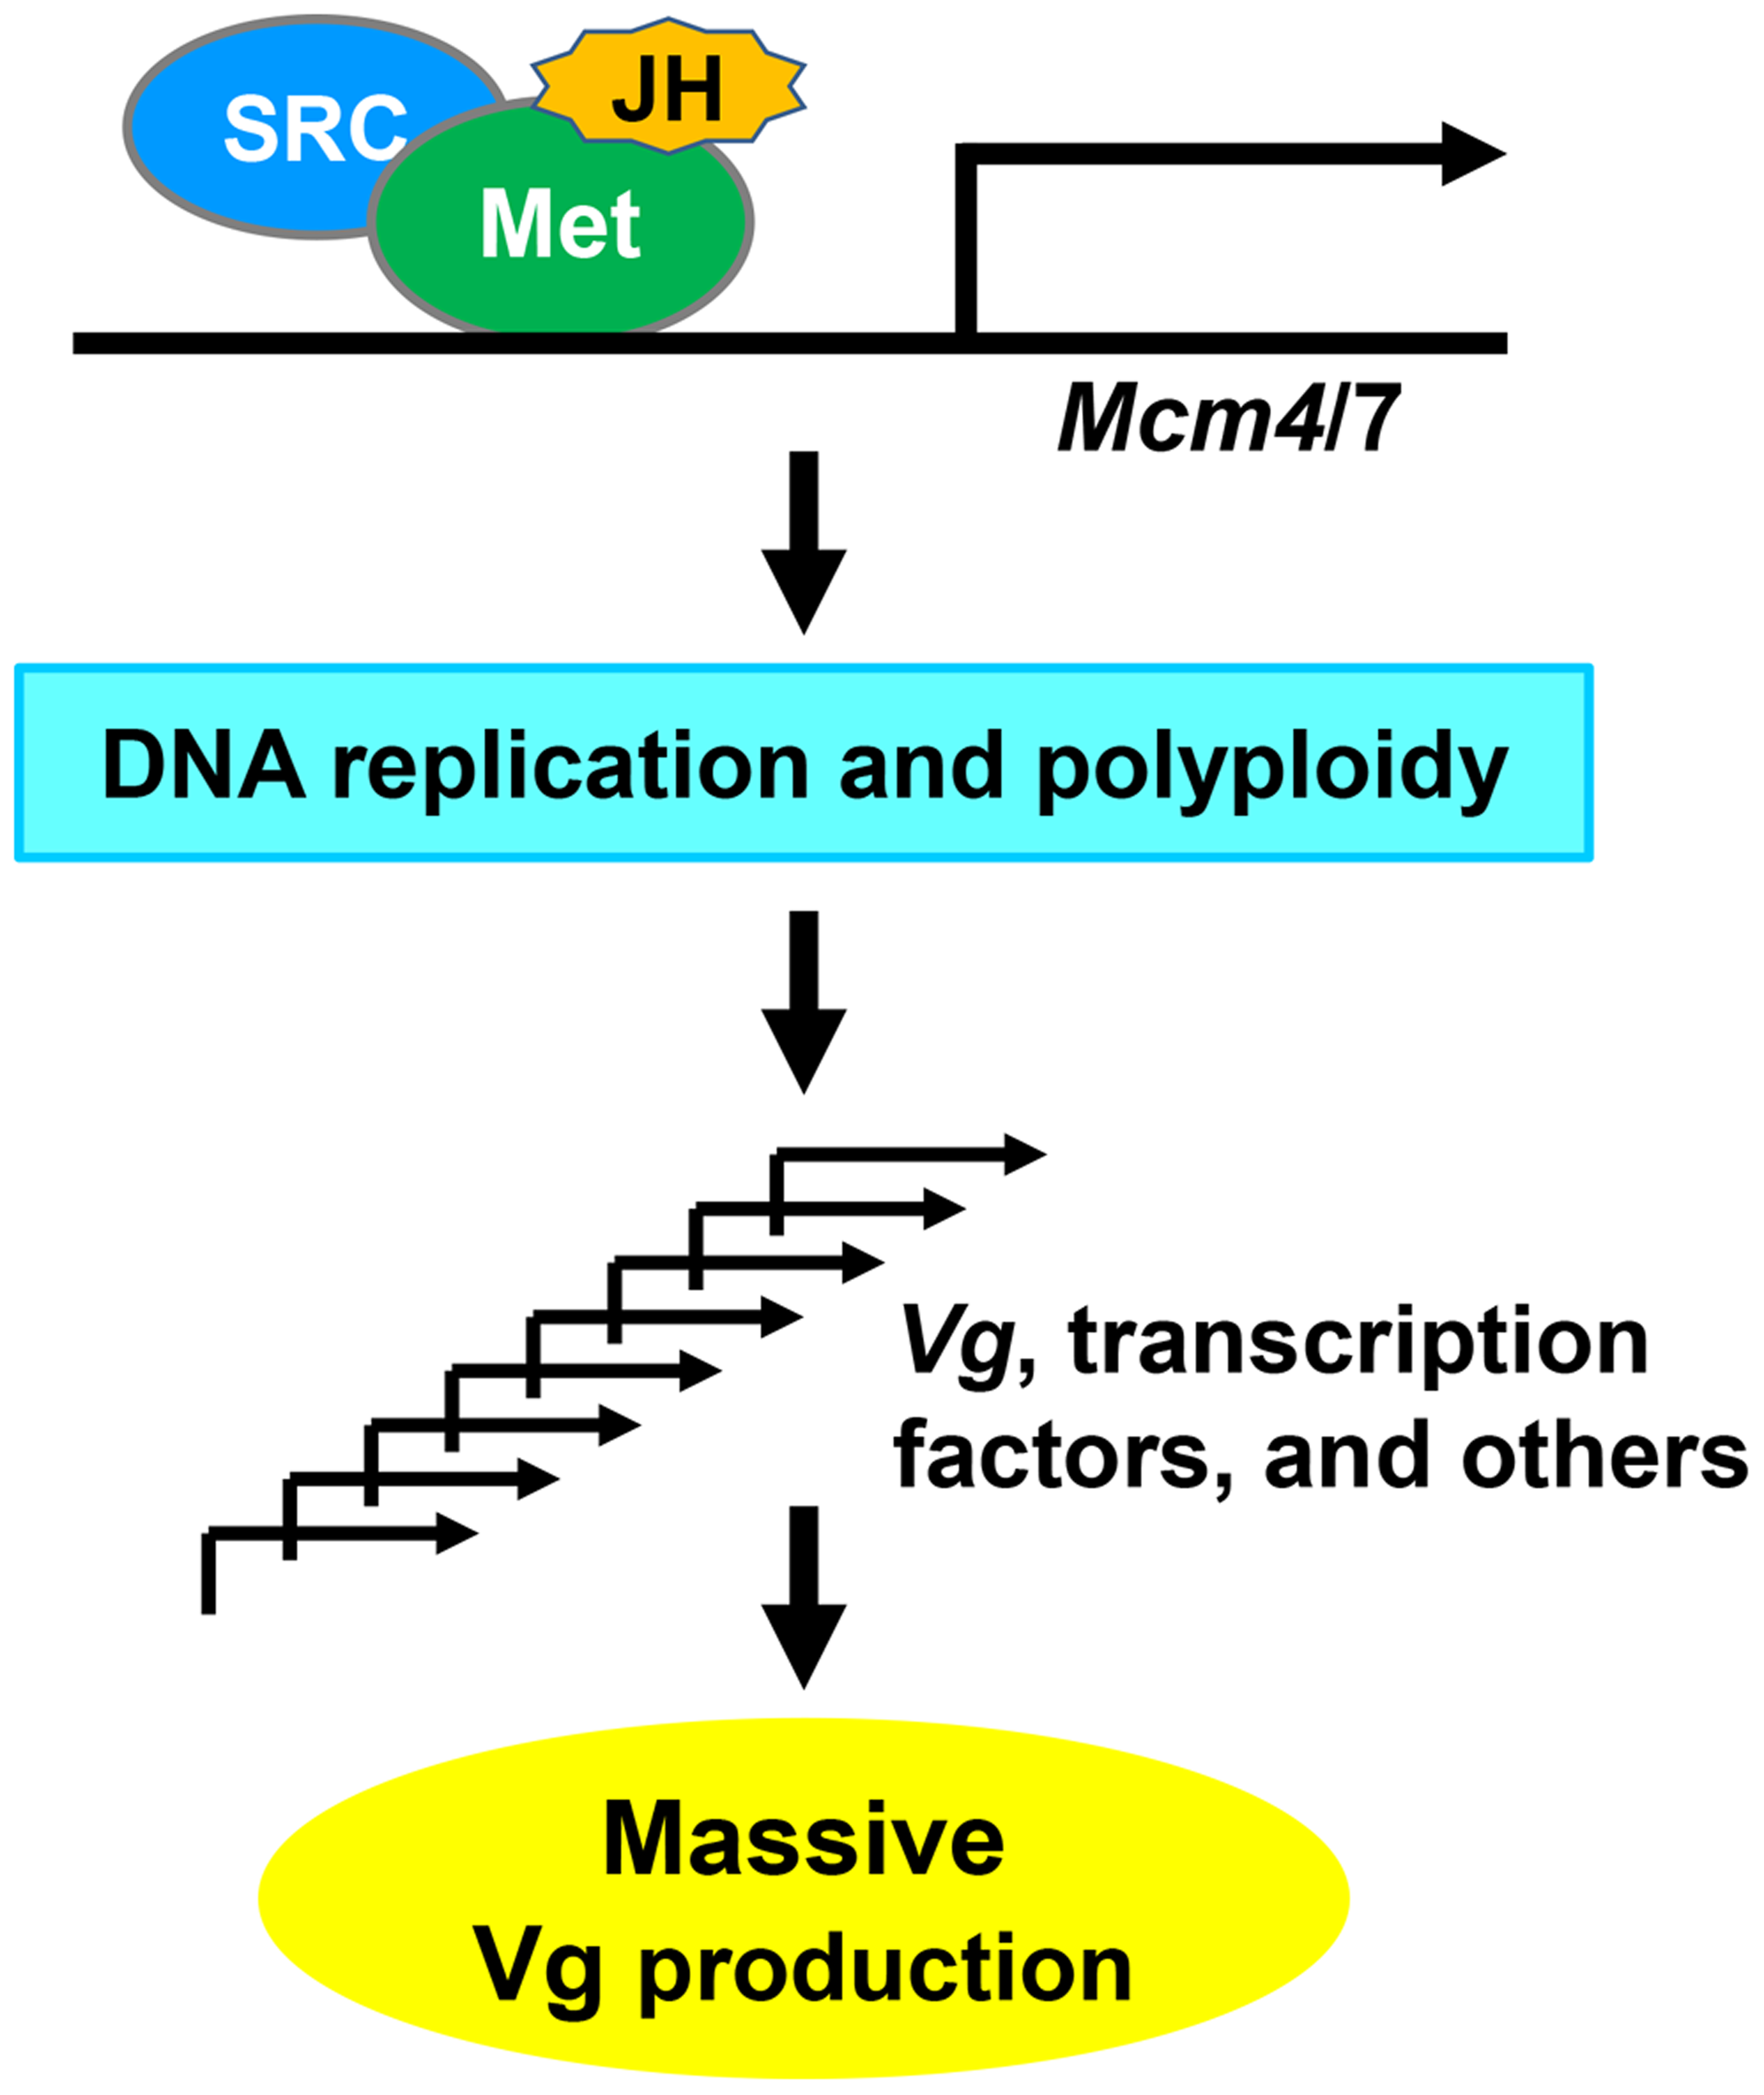 A proposed model for locust Vg synthesis regulated by the JH-receptor complex acting on <i>Mcm4</i> and <i>Mcm7</i>.